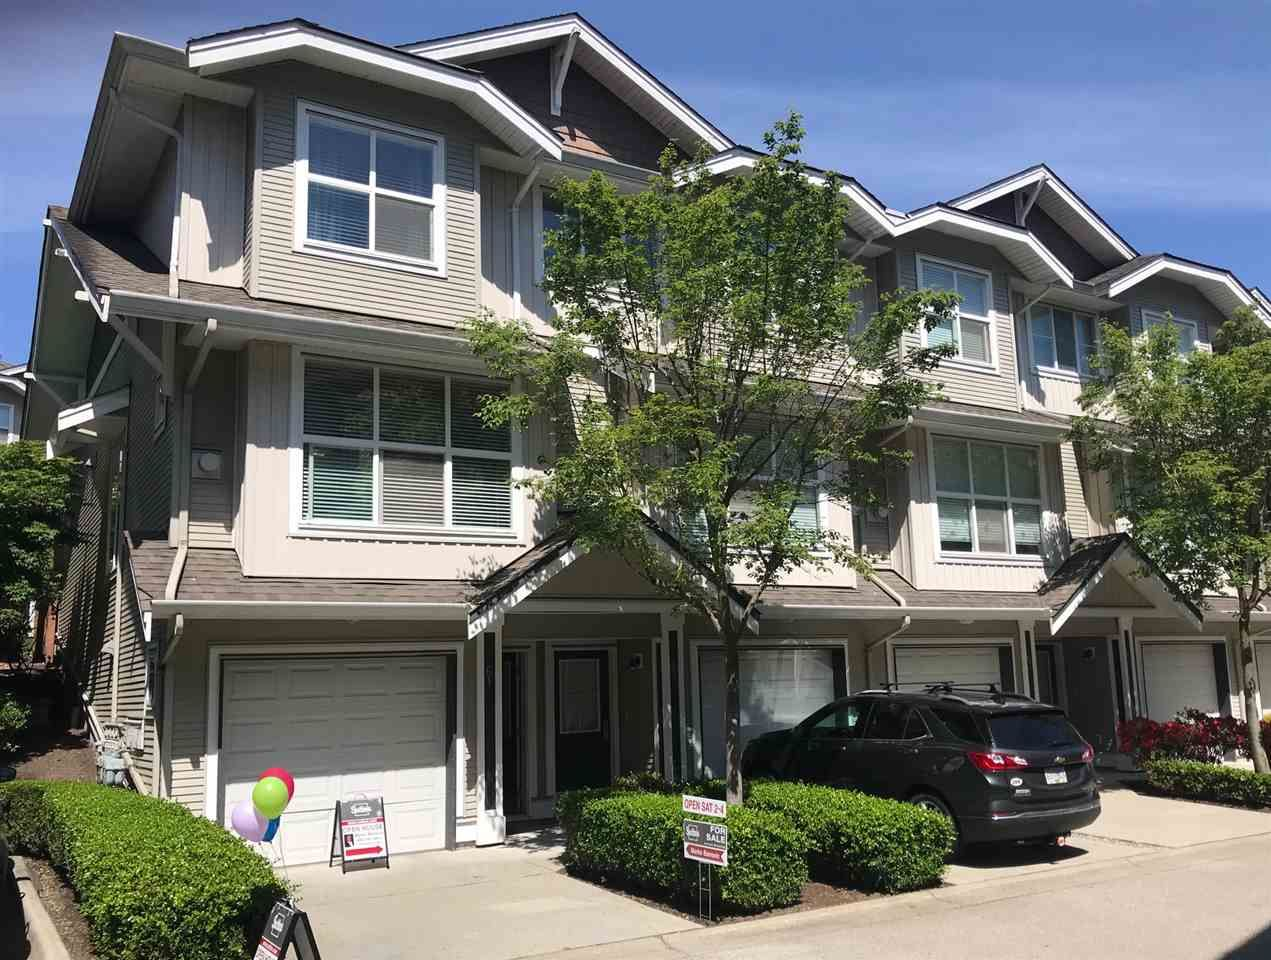 """Main Photo: 61 20460 66 Avenue in Langley: Willoughby Heights Townhouse for sale in """"WILLOW EDGE"""" : MLS®# R2370198"""